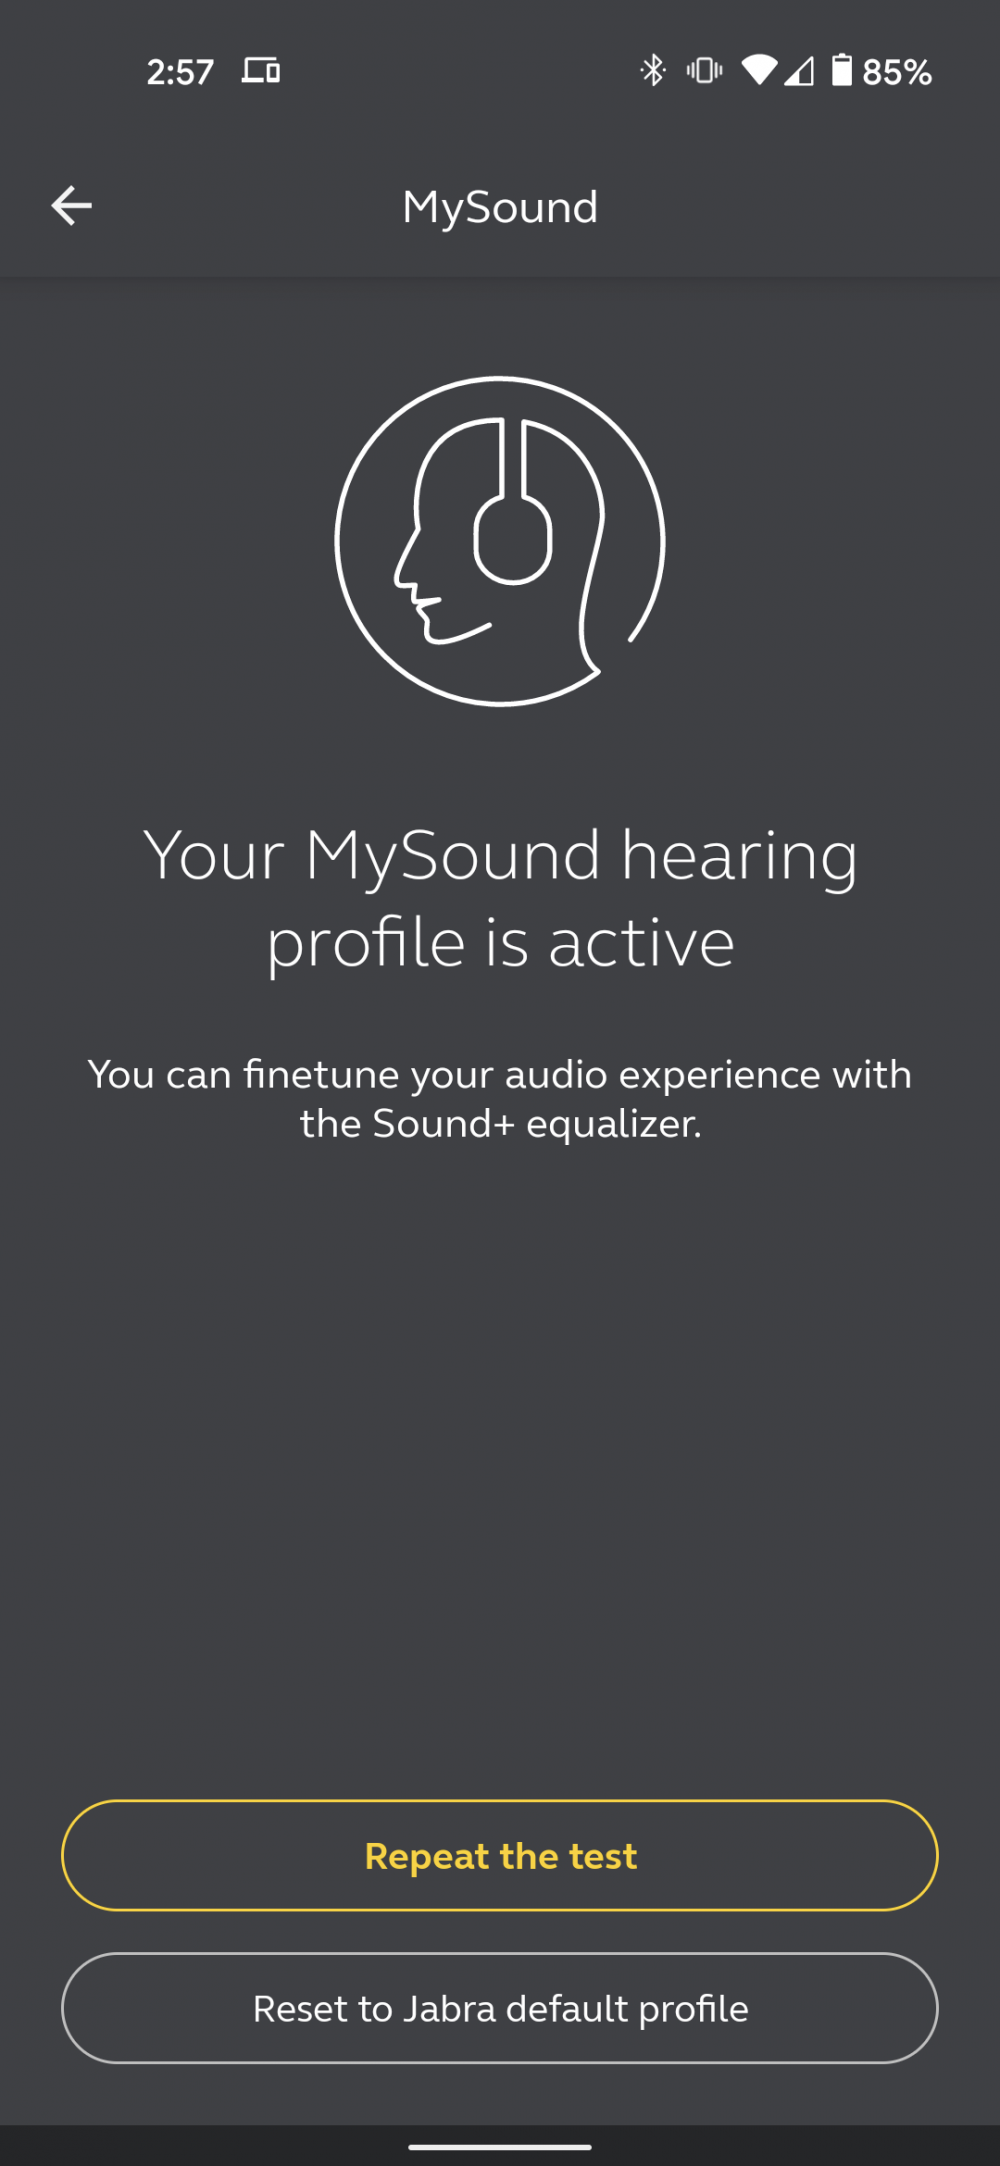 The Sound+ app with the MySound feature